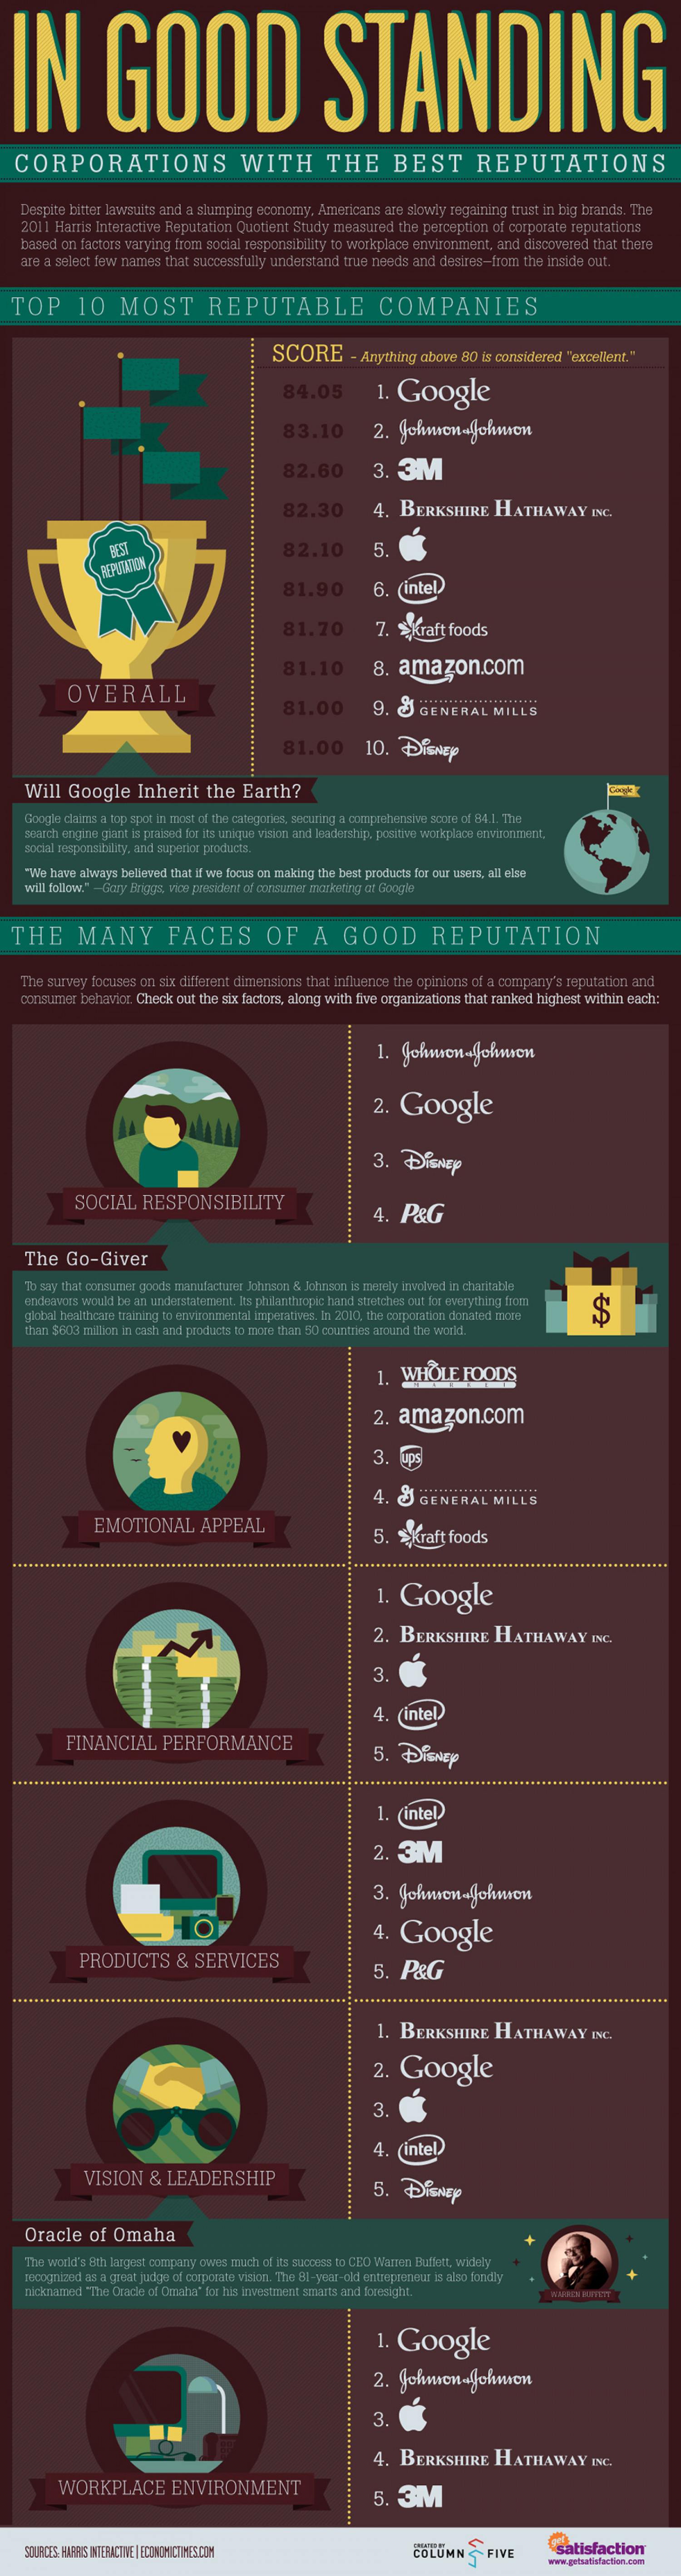 In Good Standing Infographic